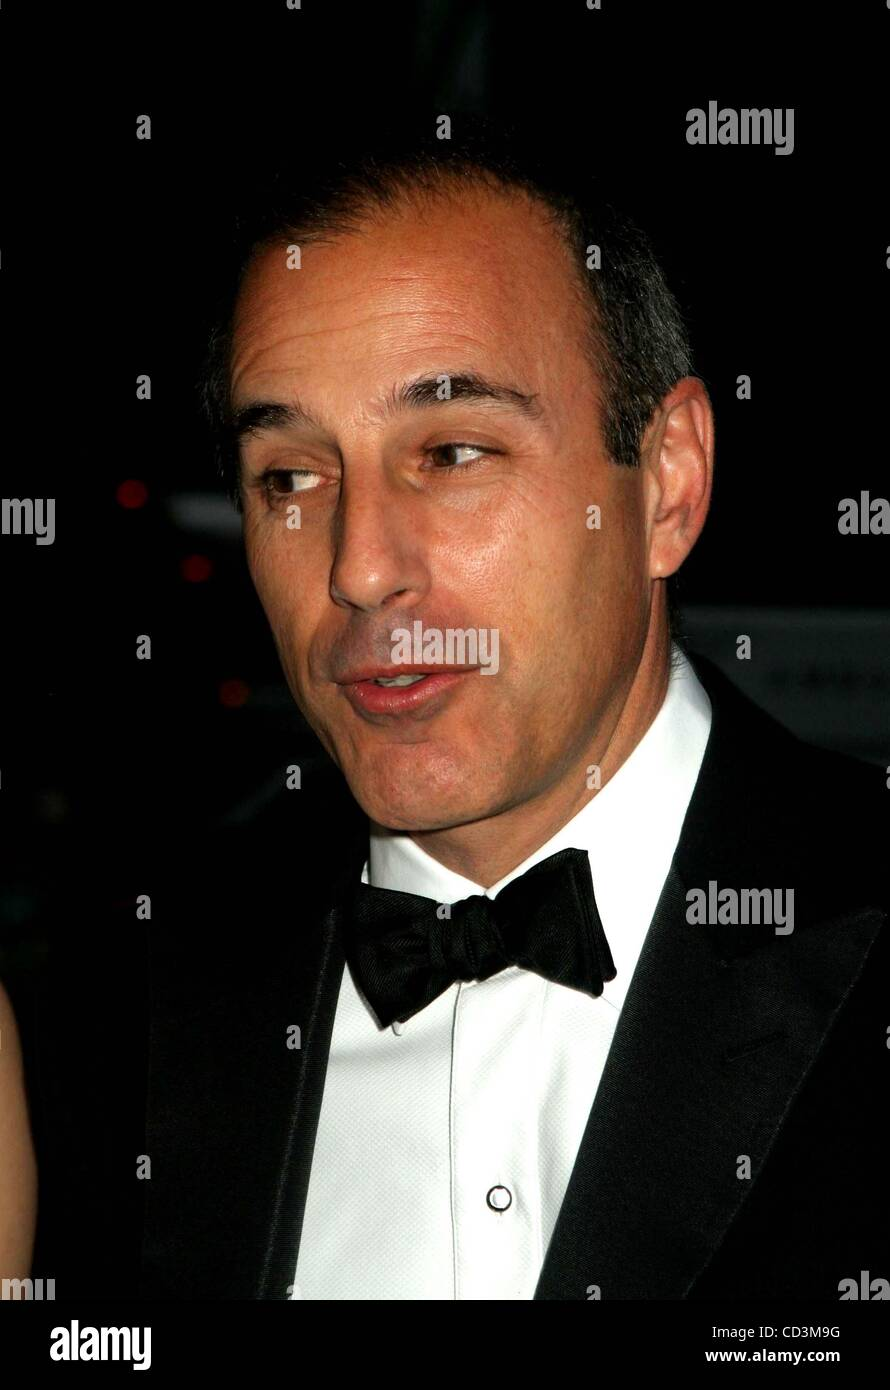 Matt Lauer Stock Photos Amp Matt Lauer Stock Images Alamy